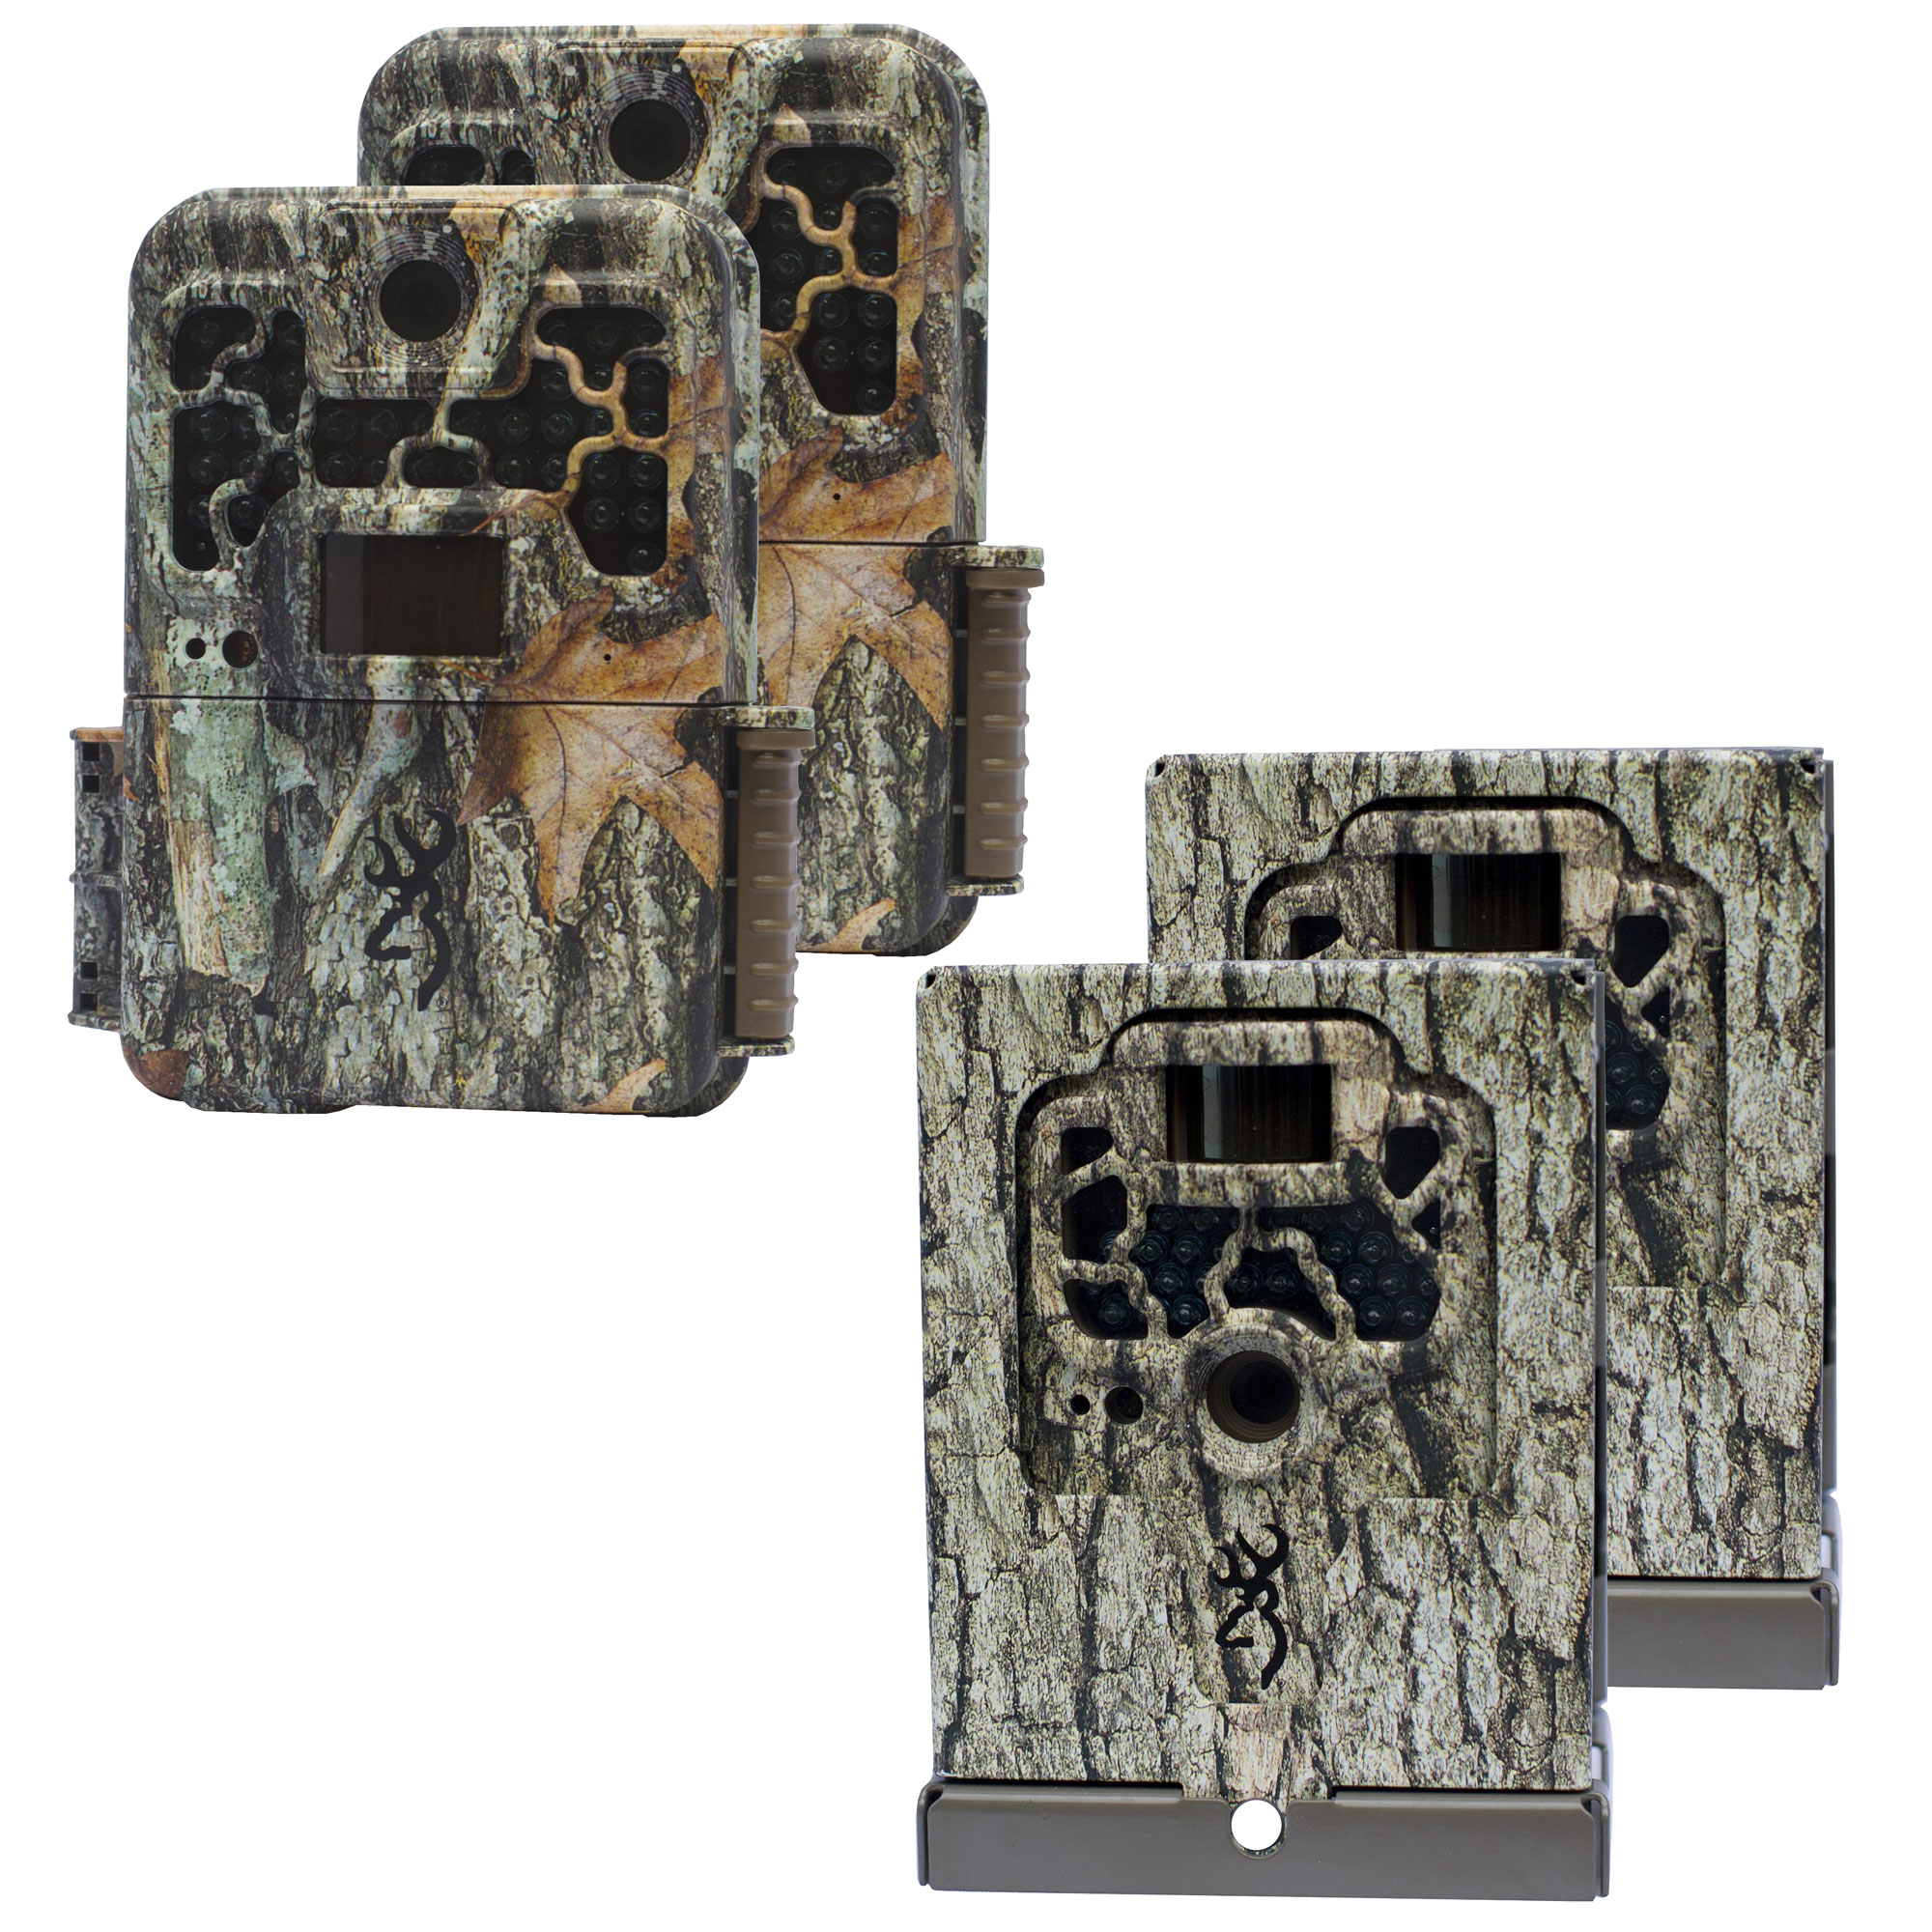 Browning Trail Cameras Recon FHD 10MP Game Cameras + Secu...